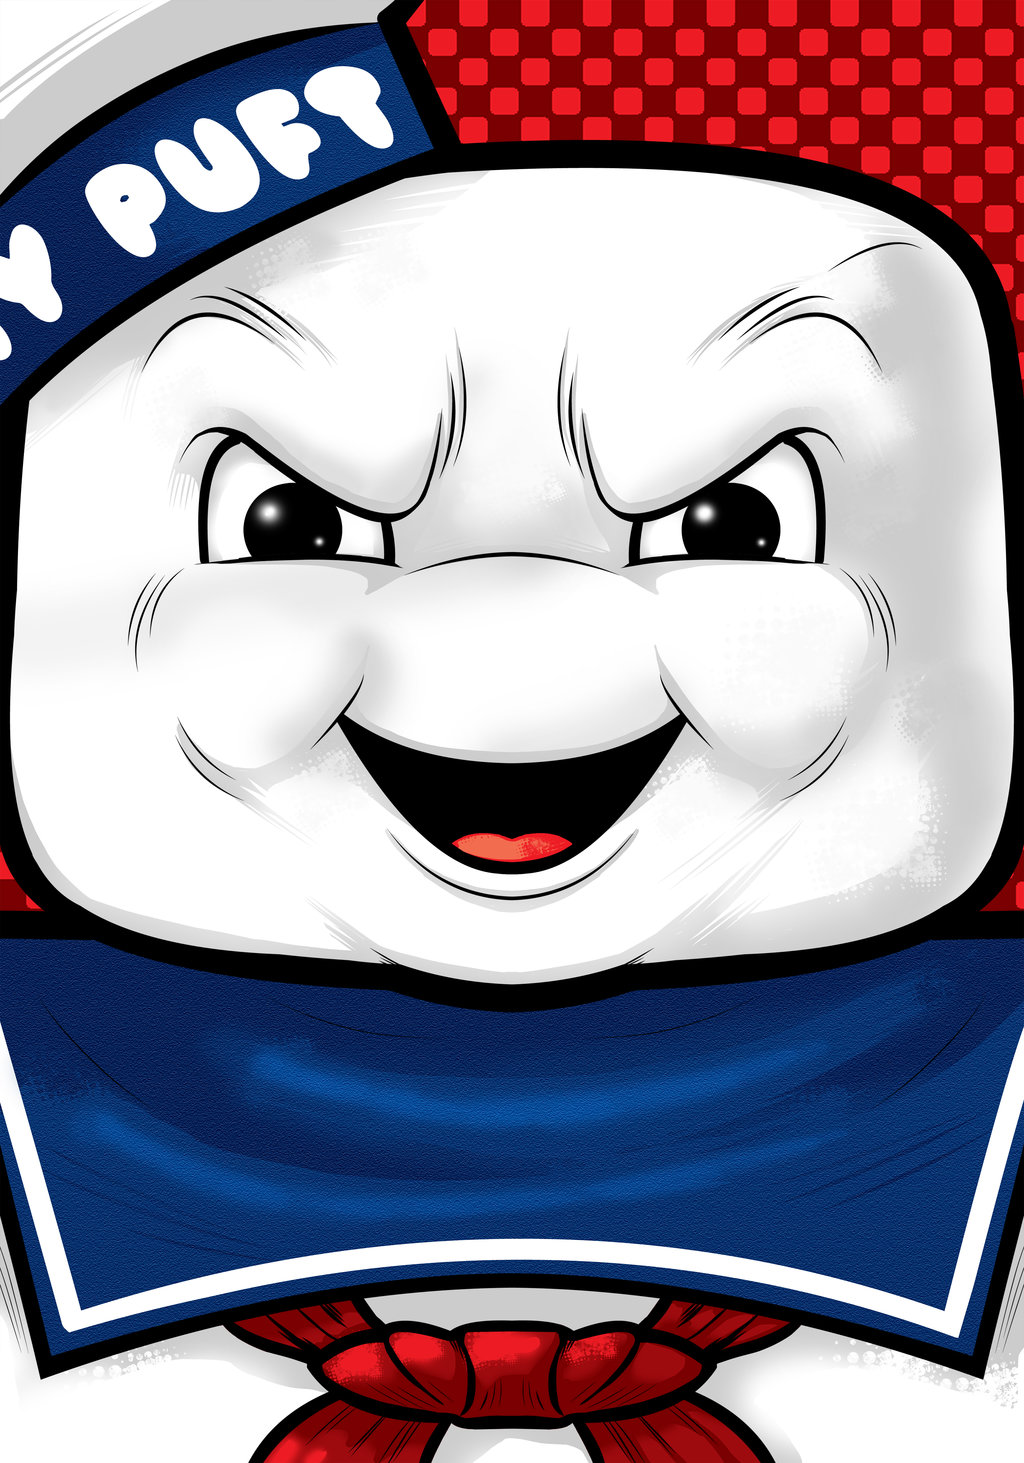 GHOSTBUSTERS FANS — herochan: Stay Puft Marshmallow Man Created by.